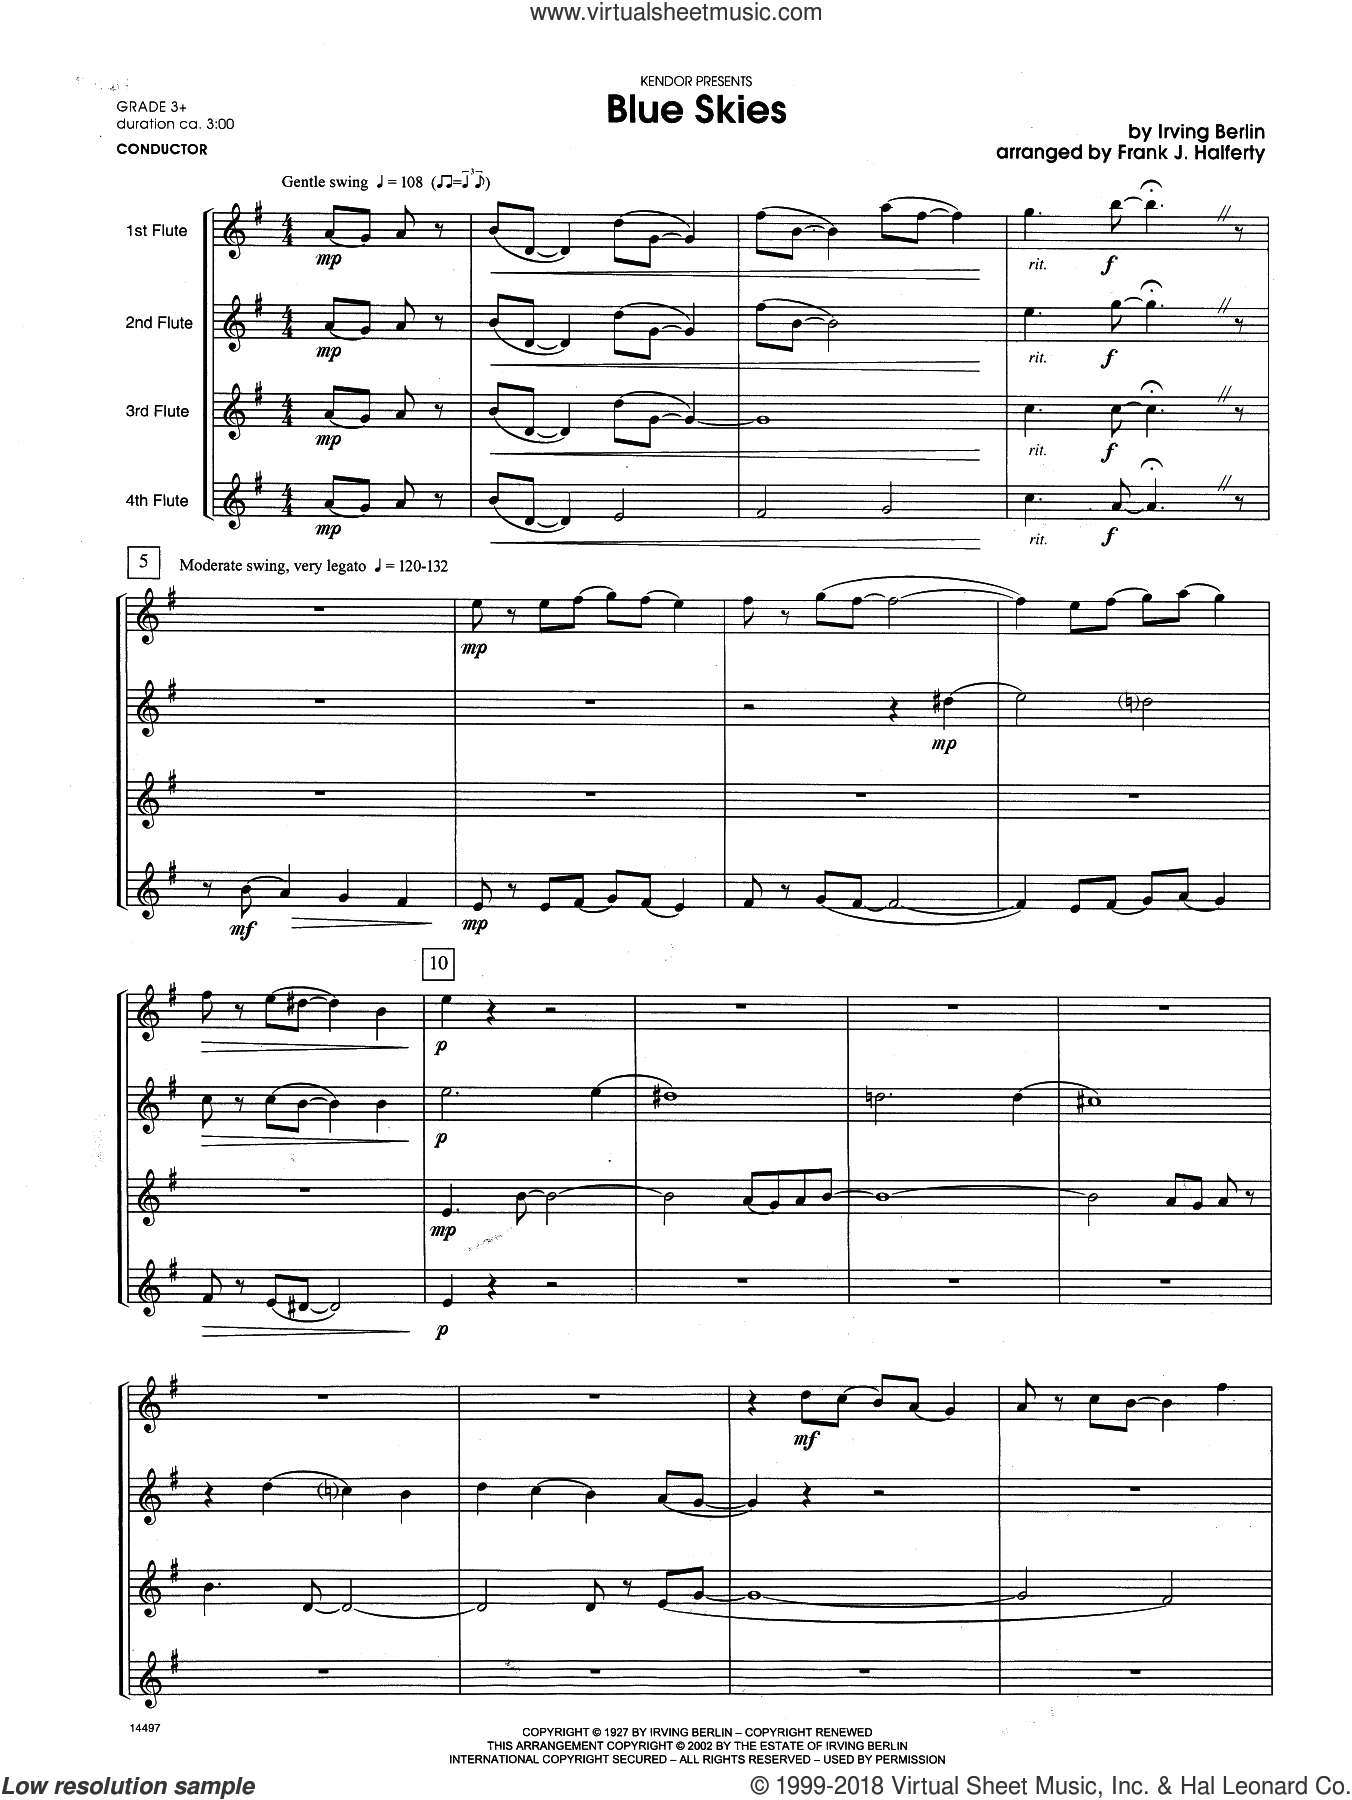 Blue Skies (COMPLETE) sheet music for flute quartet by Irving Berlin and Frank J. Halferty, intermediate skill level